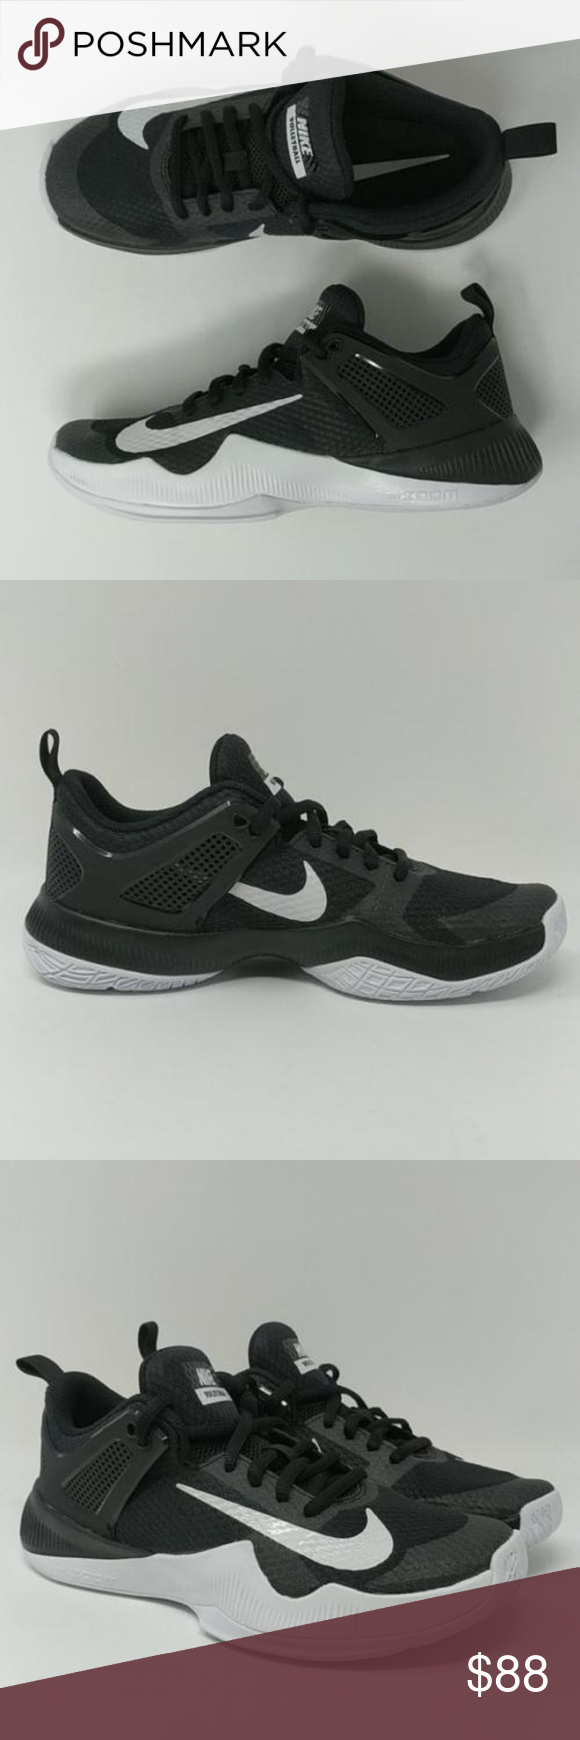 06f12a9891da Nike Air Zoom Hyperace Womens Volleyball Shoes NEW New without box. Sizes  6